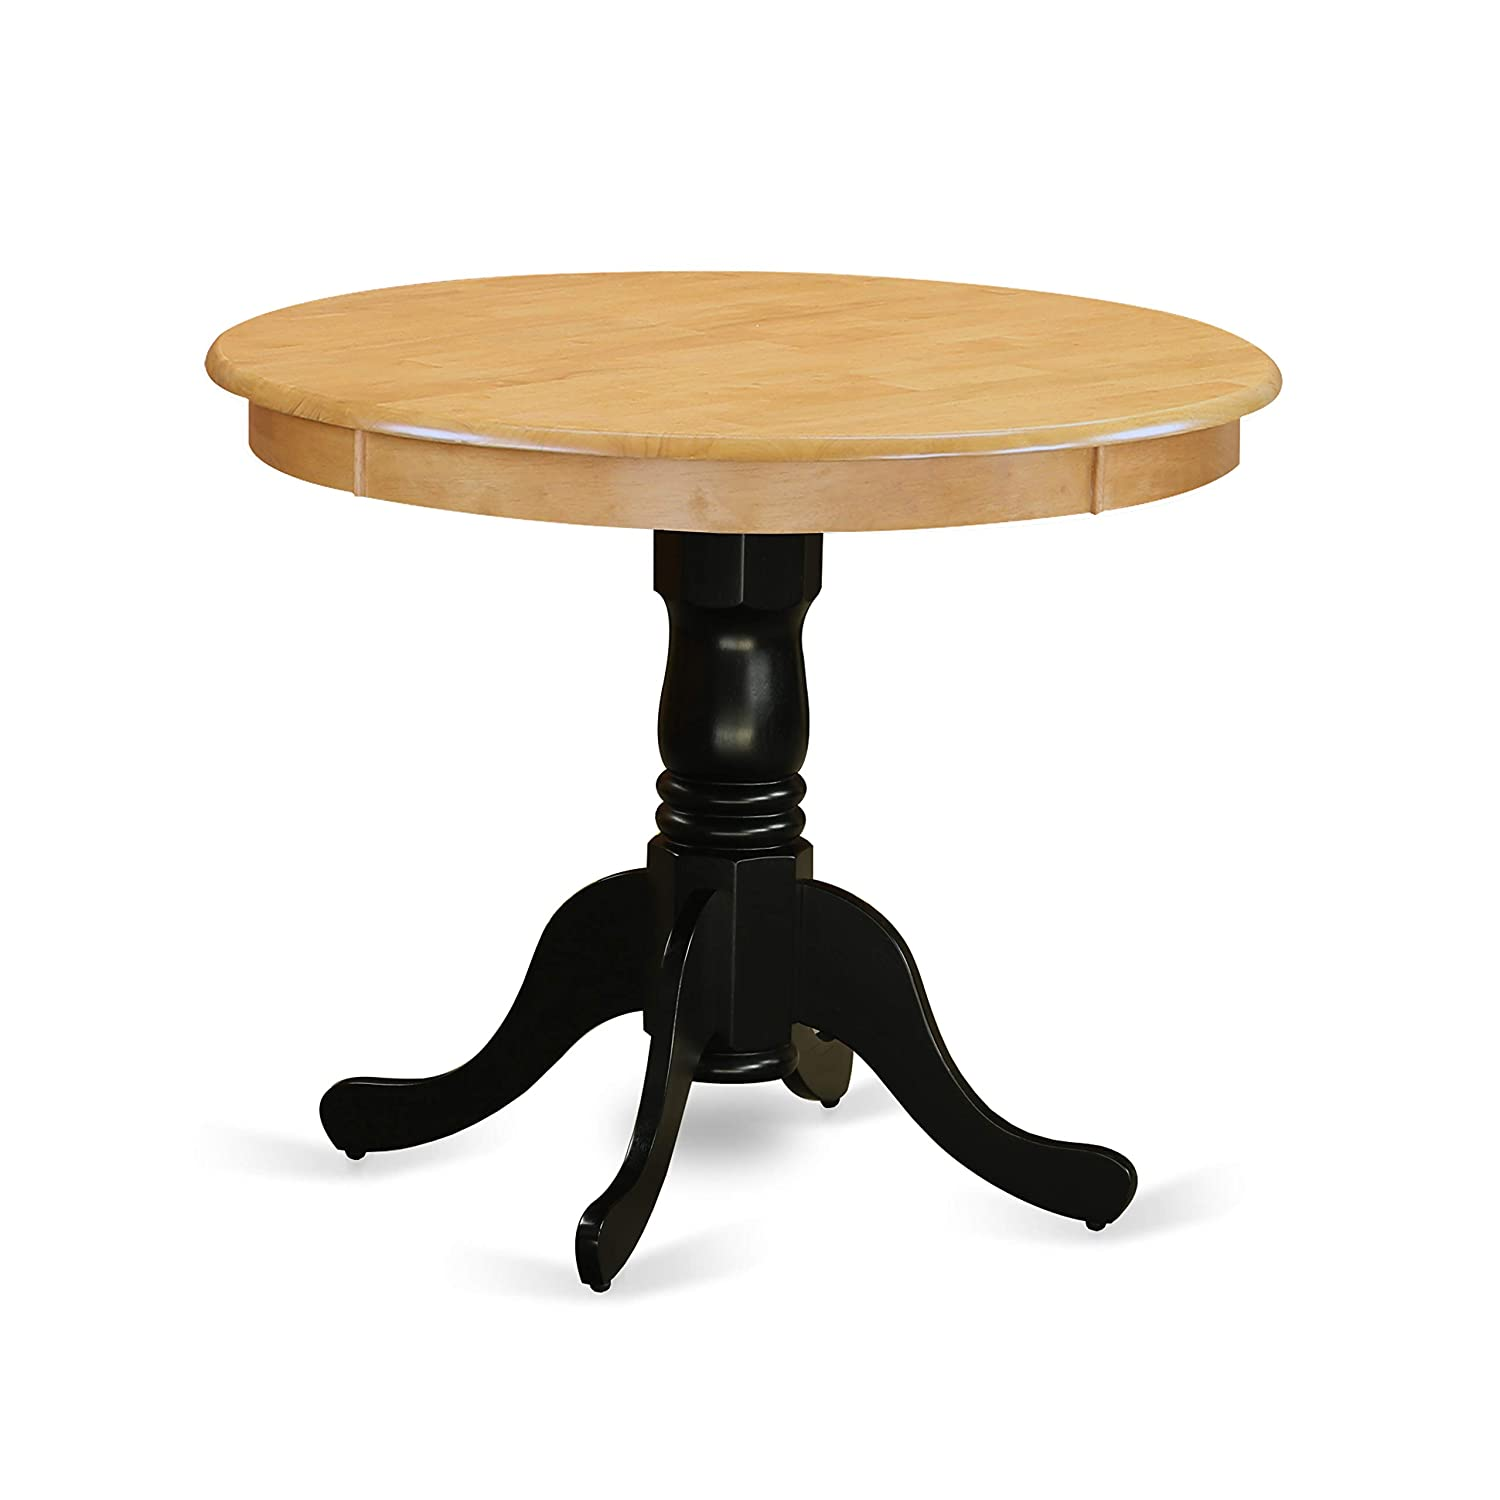 "East West Furniture ANT-OBK-TP Antique Table 36"" Round in Oak and Black Finish"